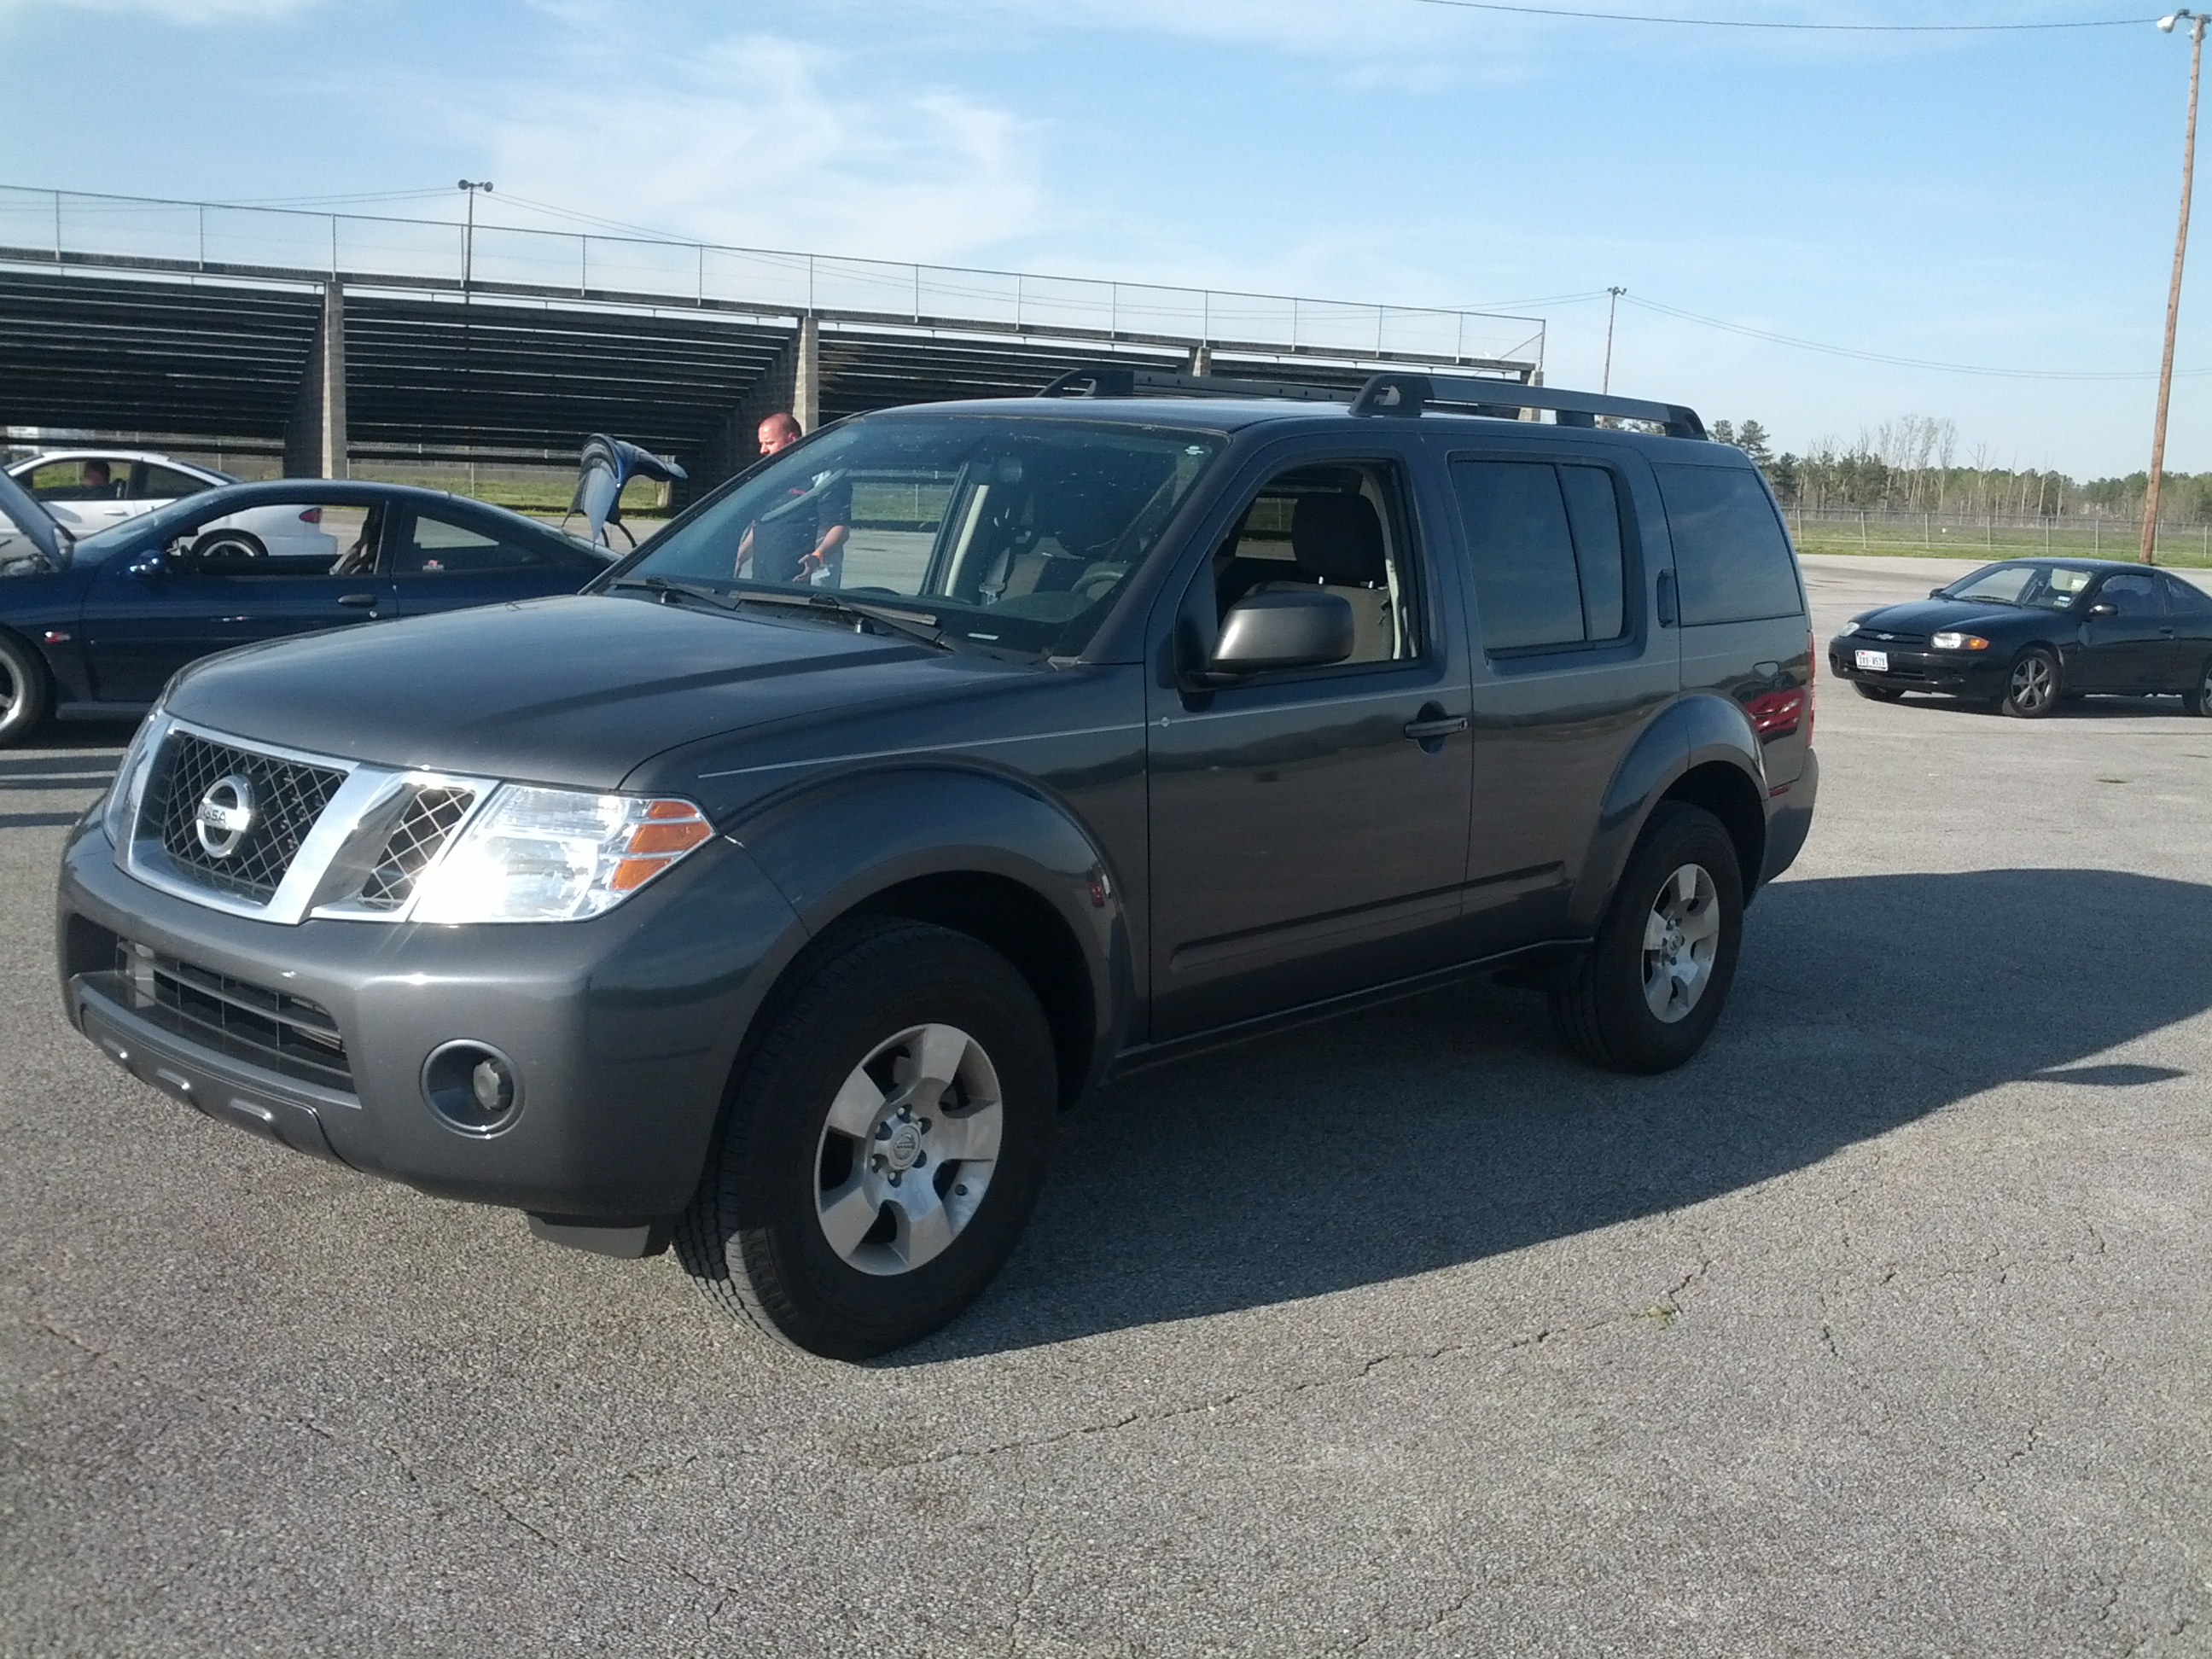 2011 Grey Nissan Pathfinder SE 4.0L 4x2 picture, mods, upgrades